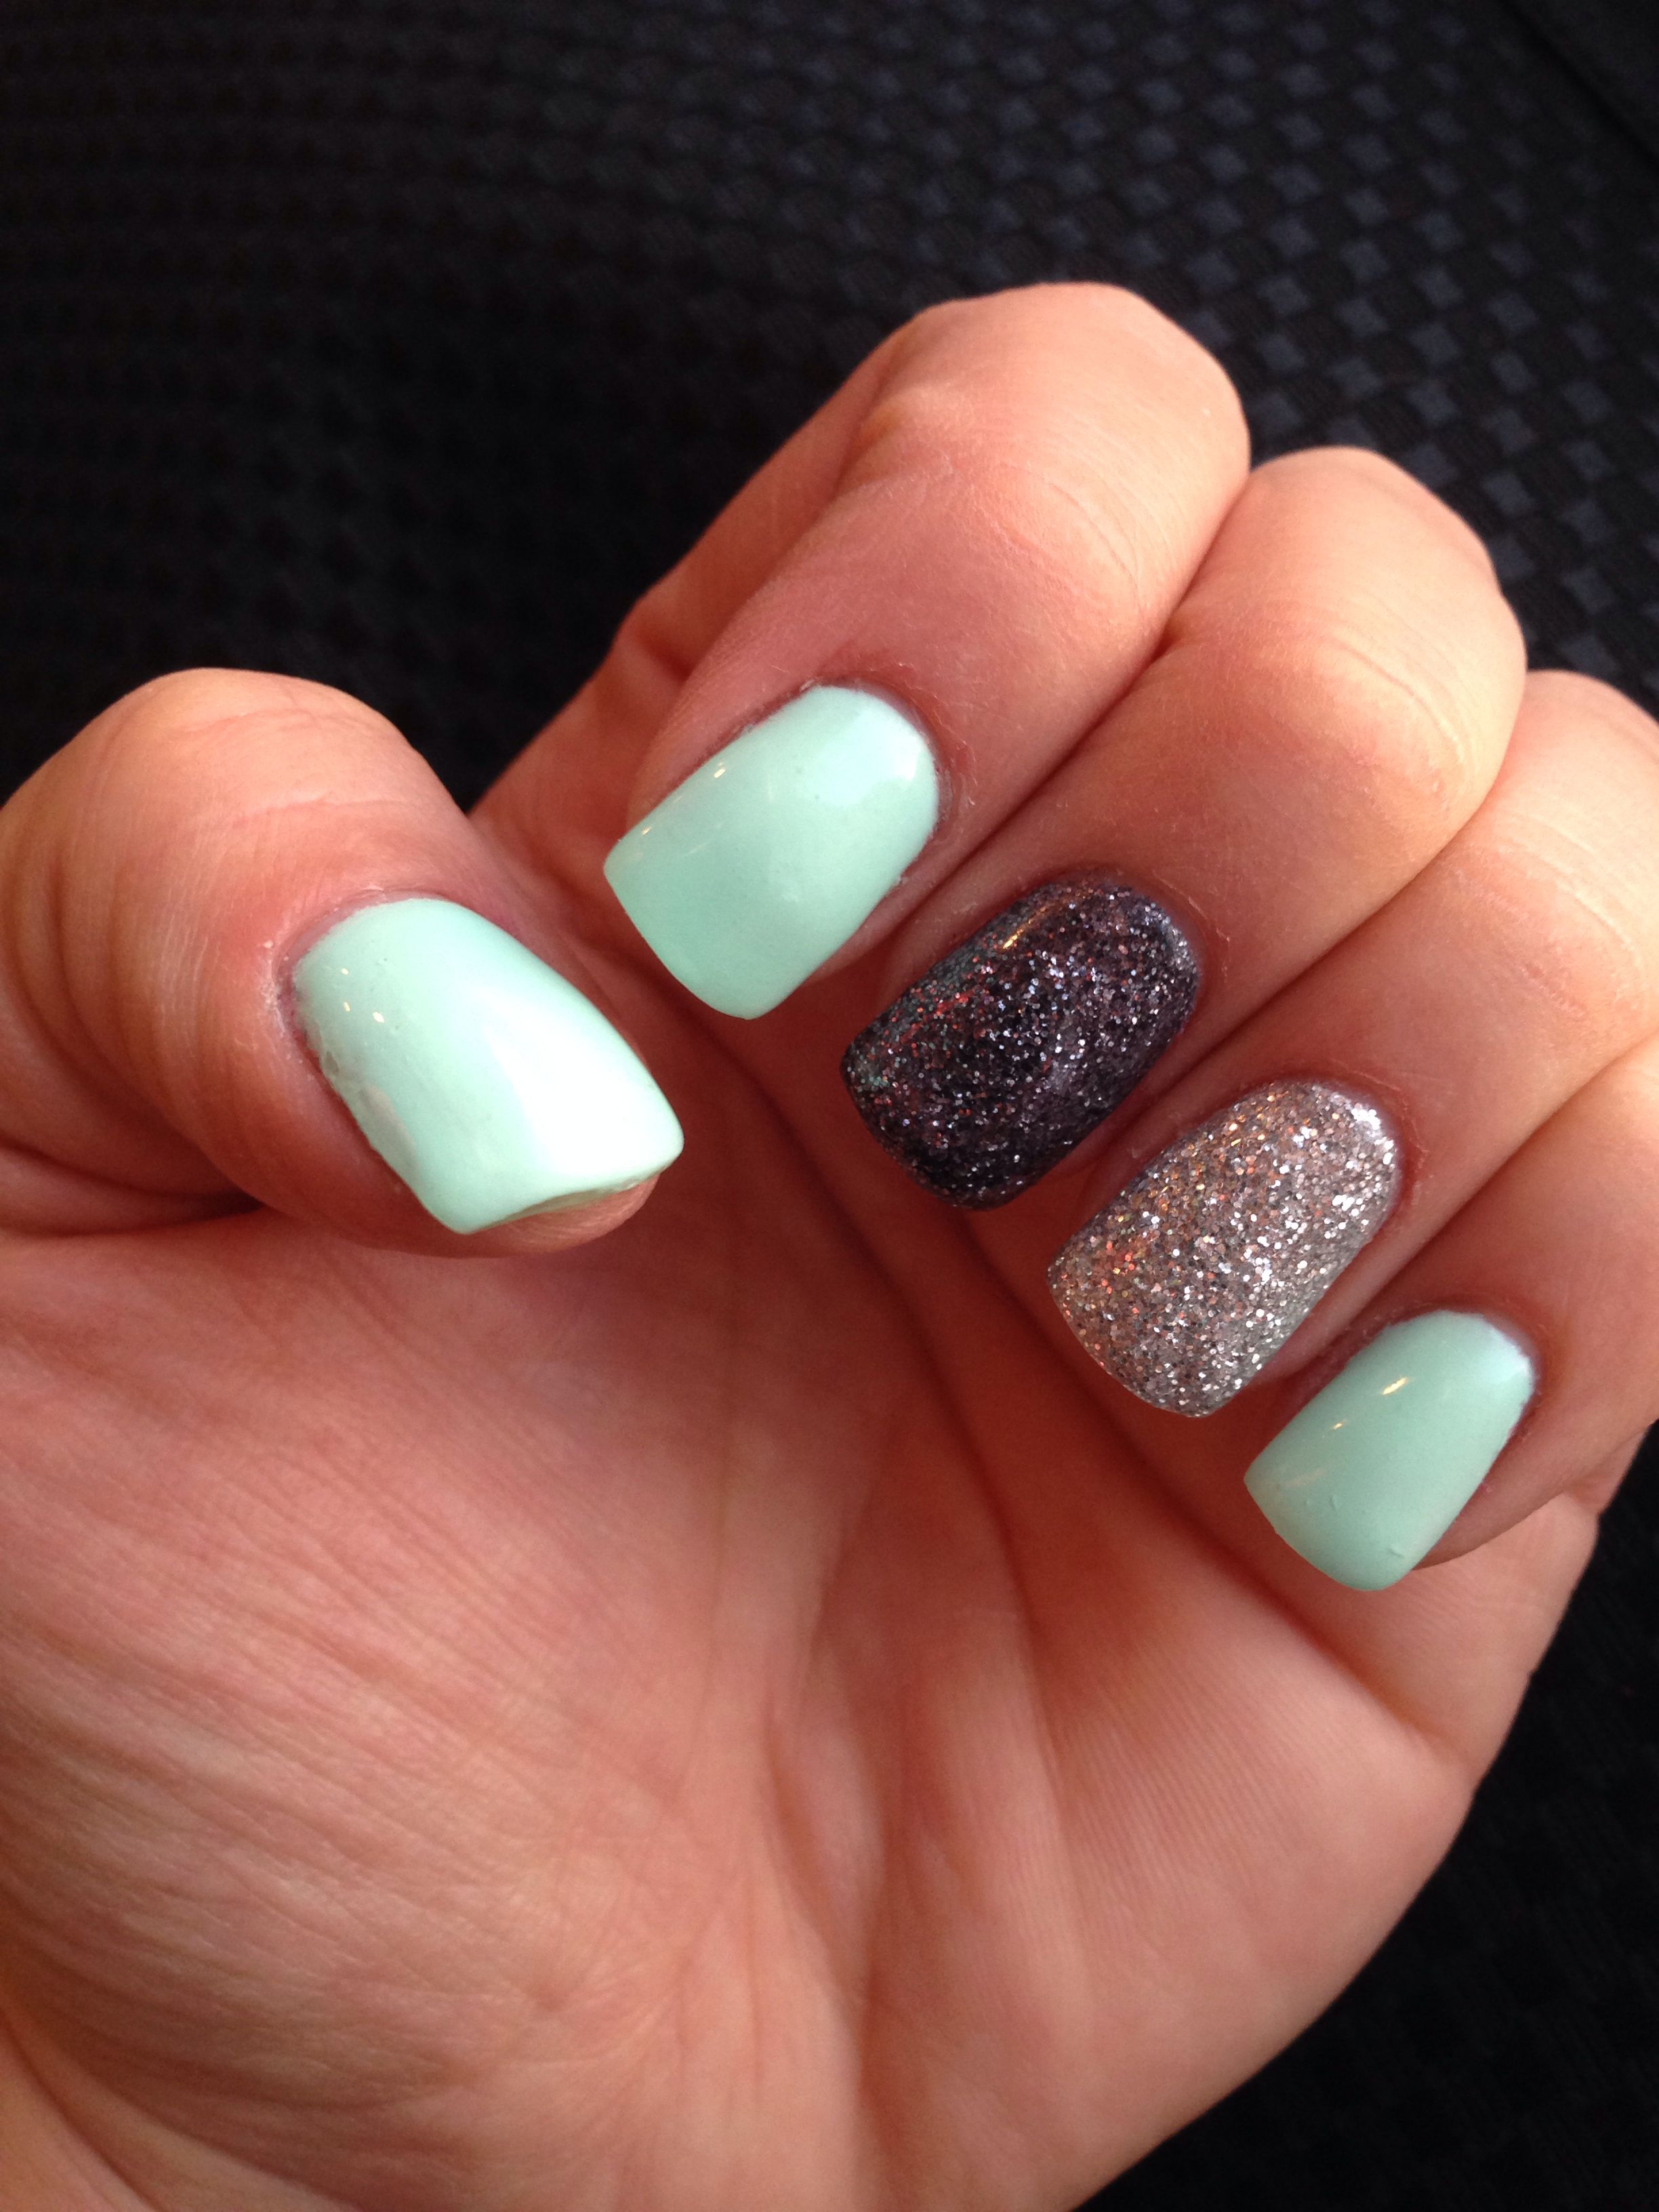 Pin By Emily Carte On Nails Gel Nails Glitter Gel Nails Mint Gel Nails